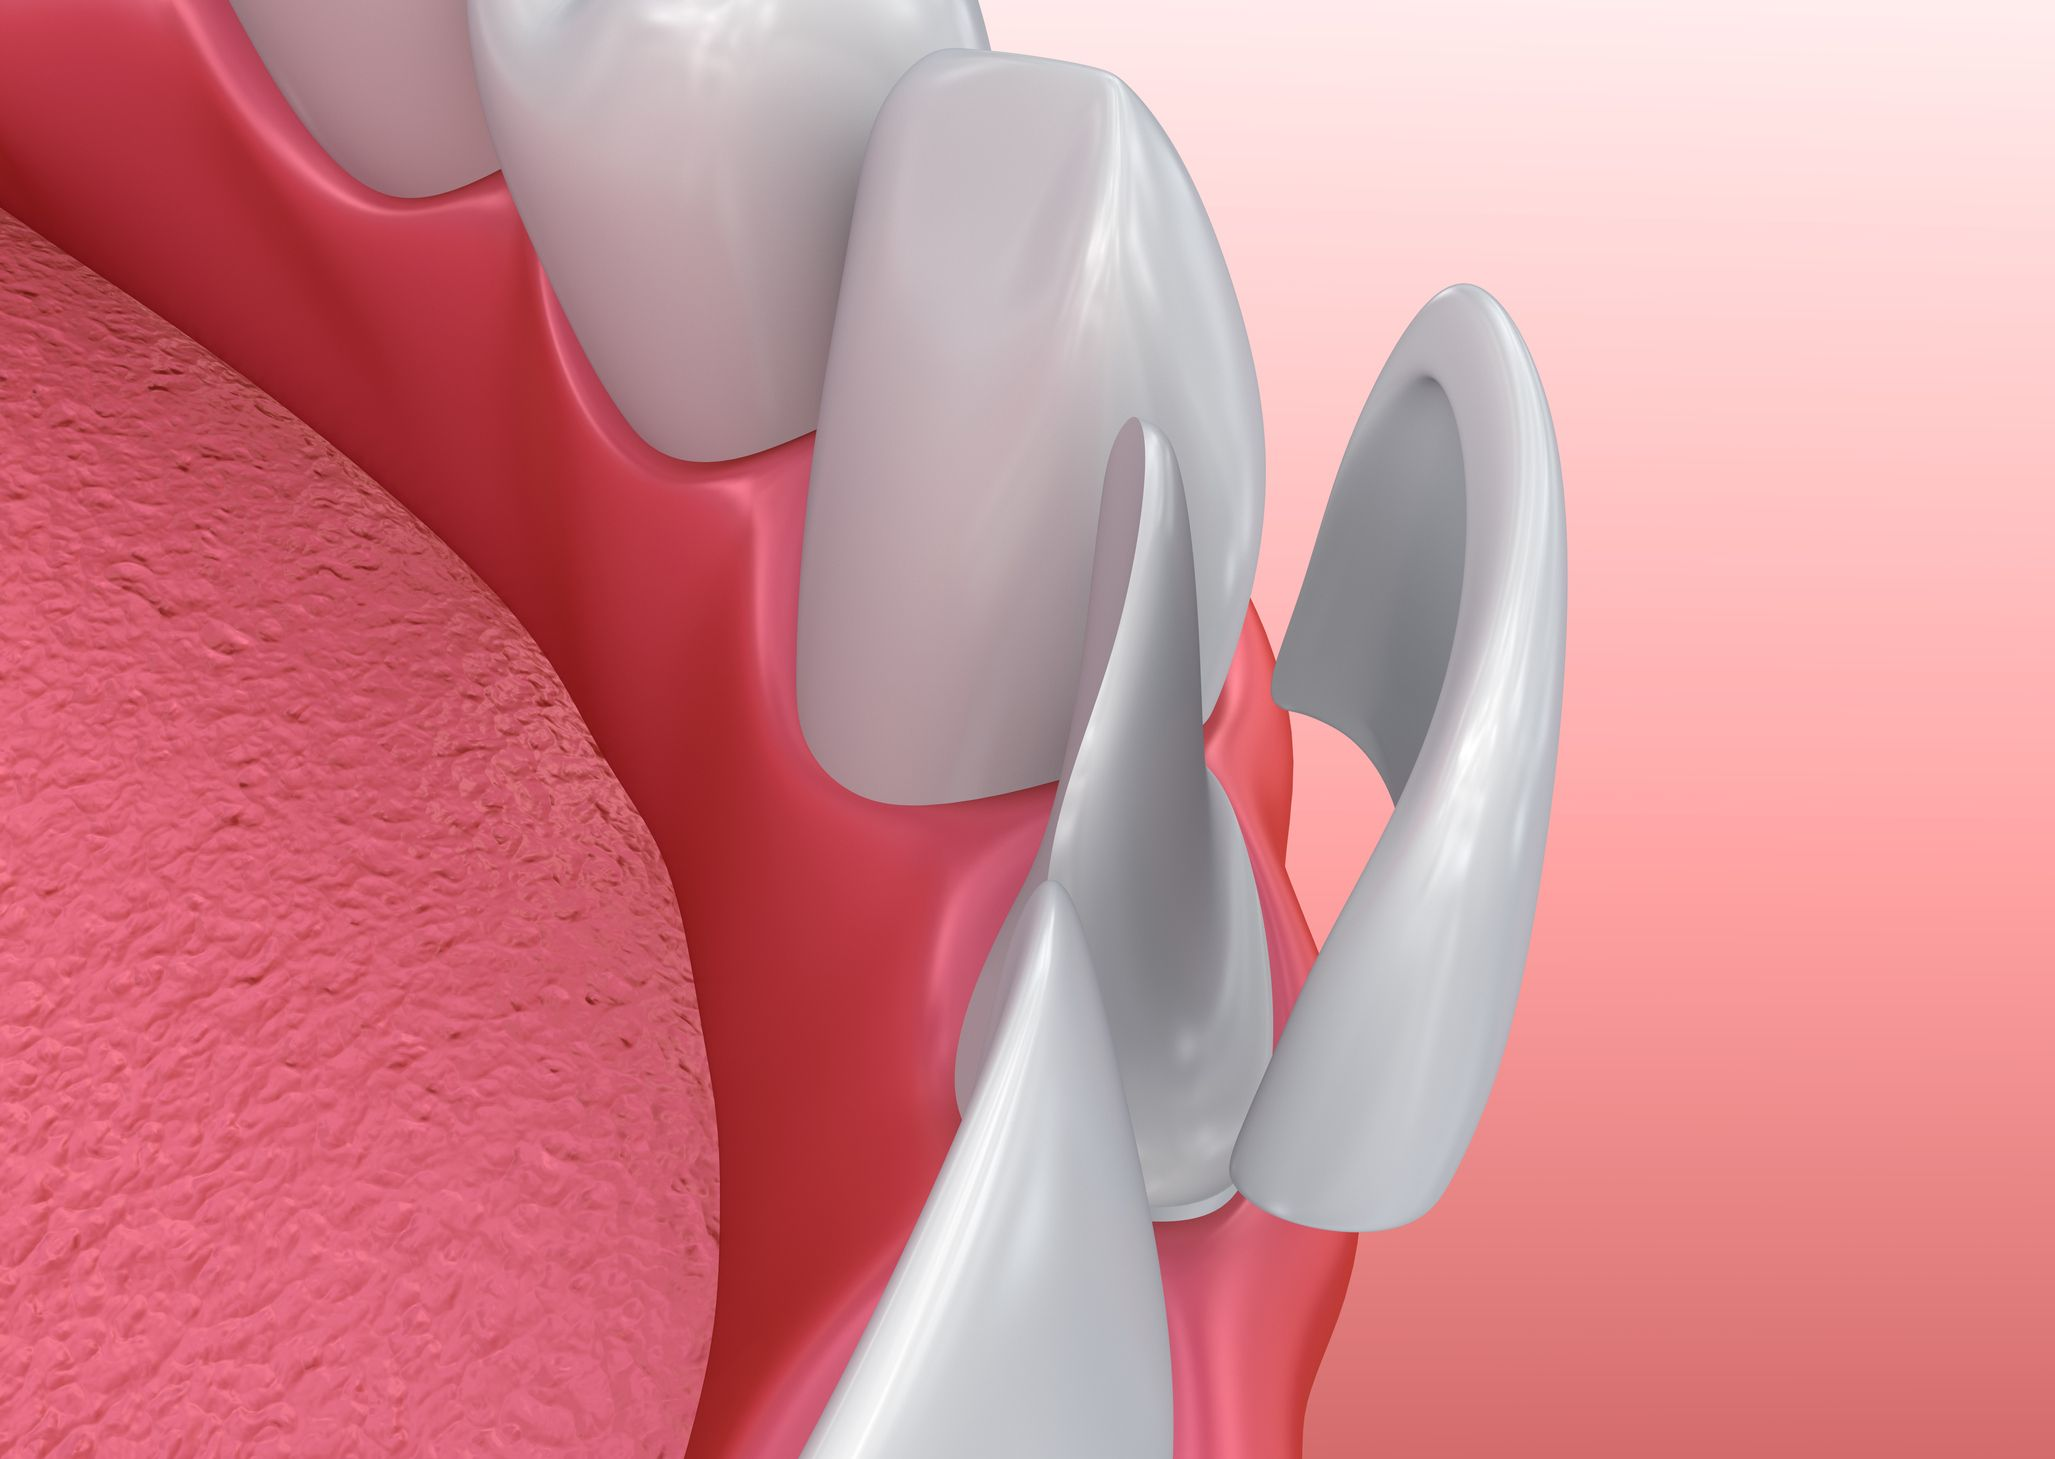 Illustration of a porcelain veneer on a small tooth